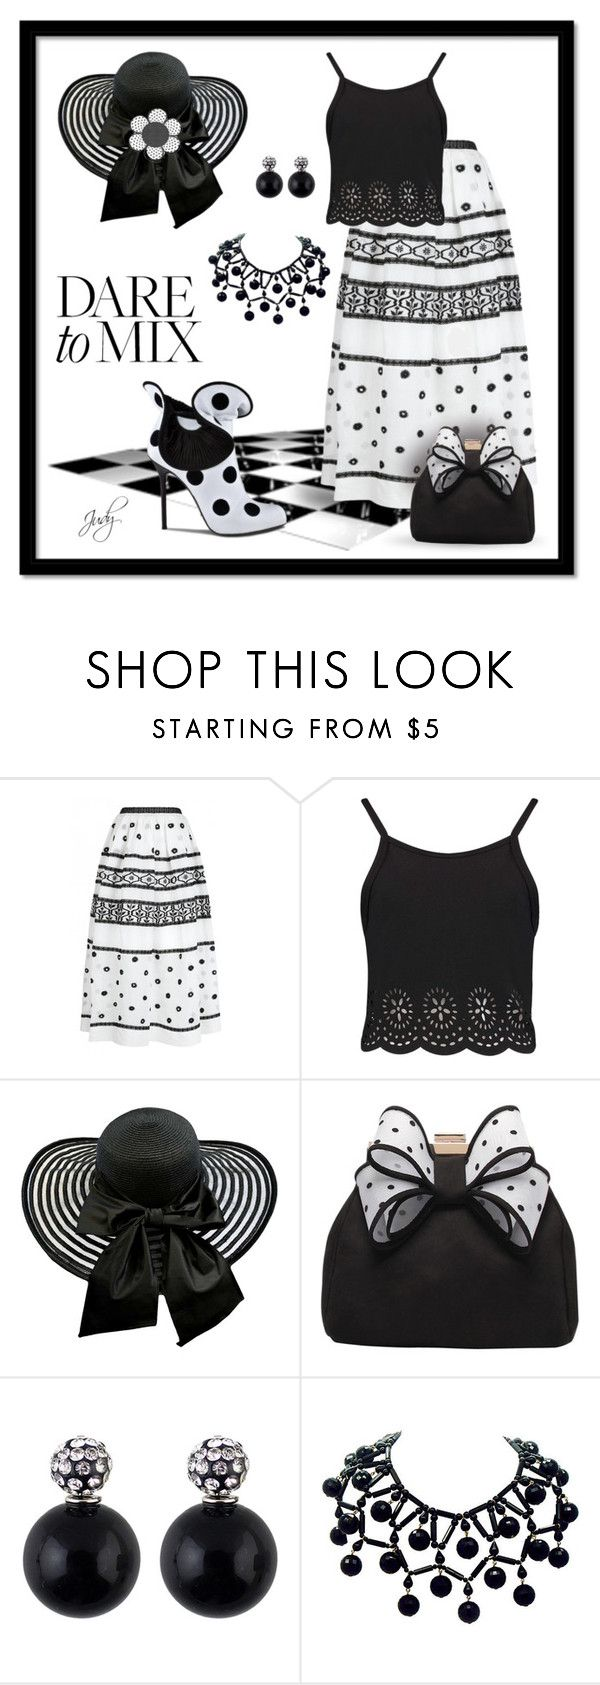 """Dots, Patterns, Stripes in B/W"" by judymjohnson ❤ liked on Polyvore featuring Temperley London, Sergio Rossi and Miss KG"